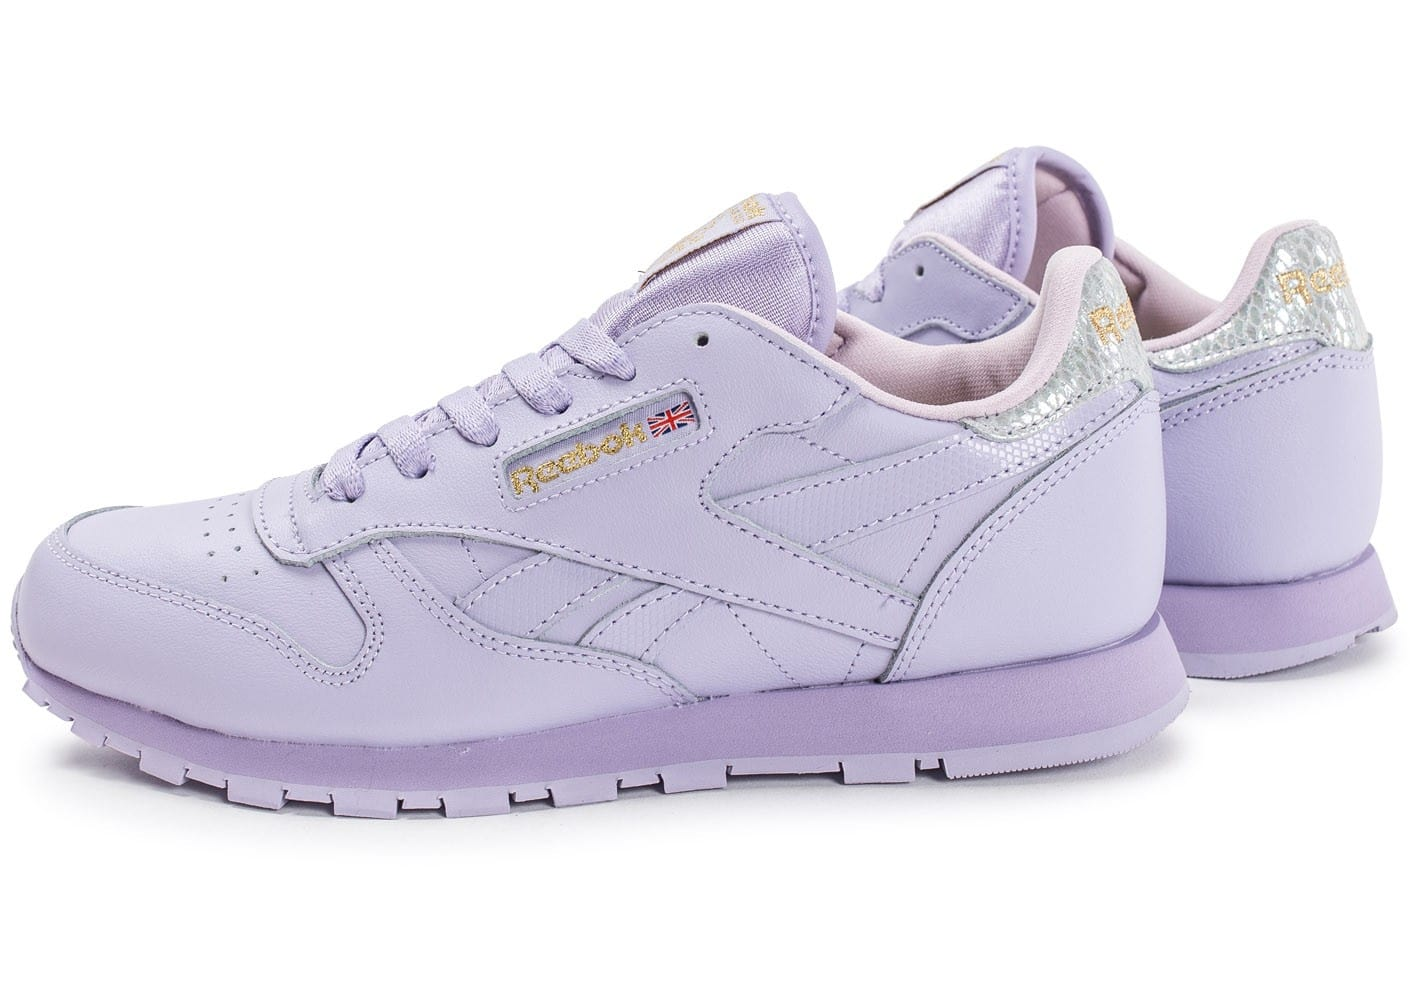 reebok classic leather metallic mauve chaussures chaussures chausport. Black Bedroom Furniture Sets. Home Design Ideas